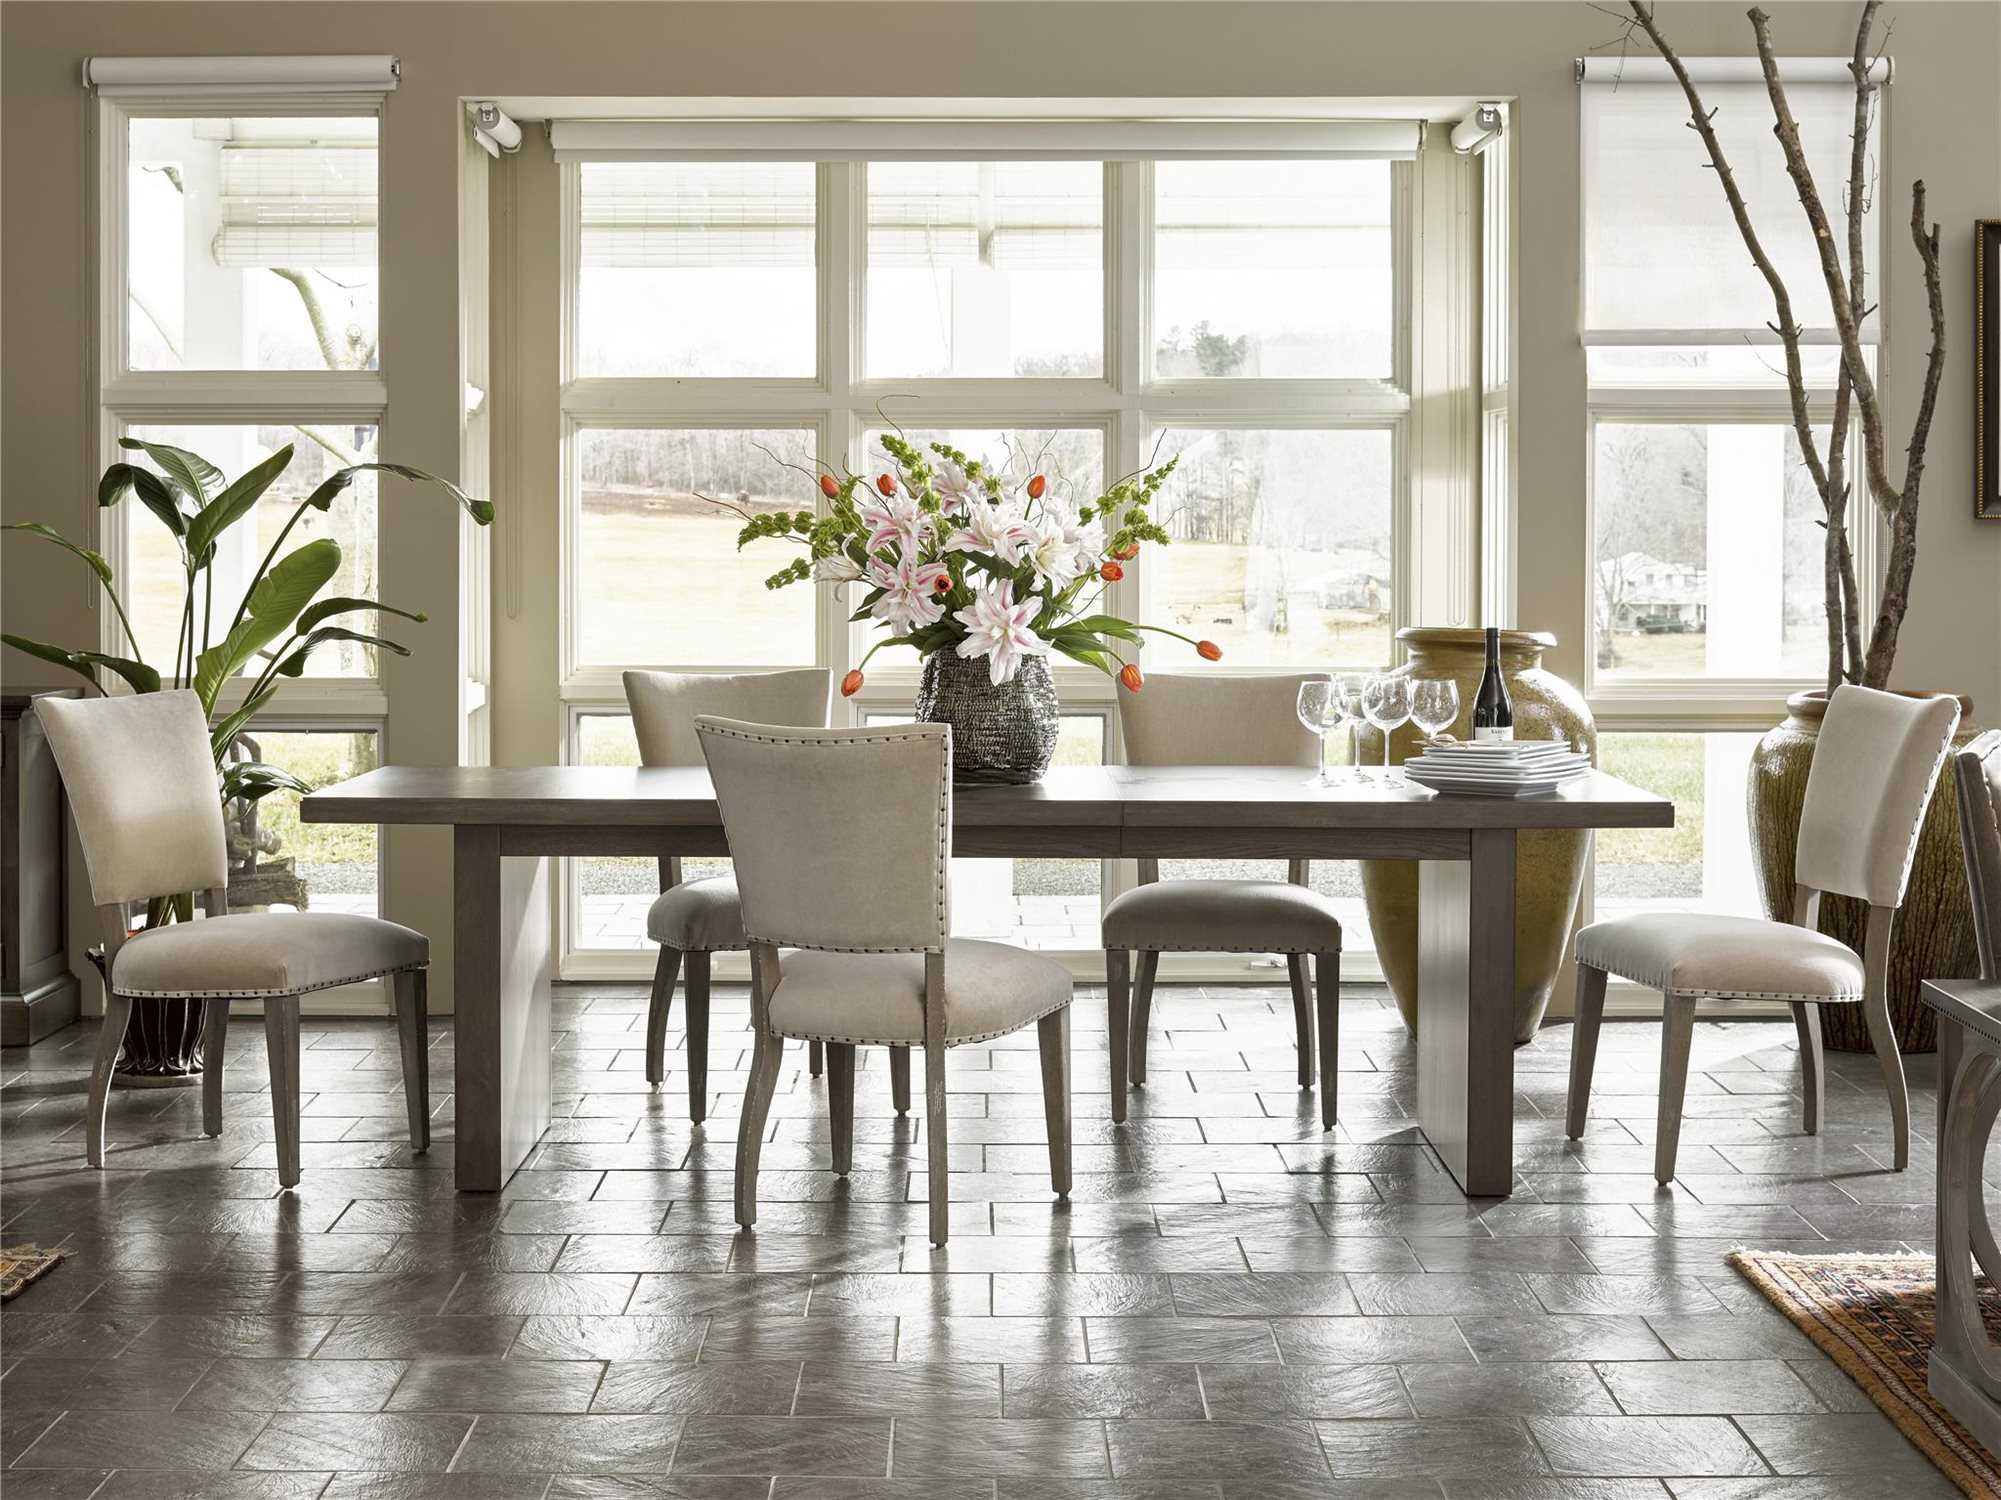 Universal furniture curated tremont dining set uf552755set - Universal furniture dining room set ...